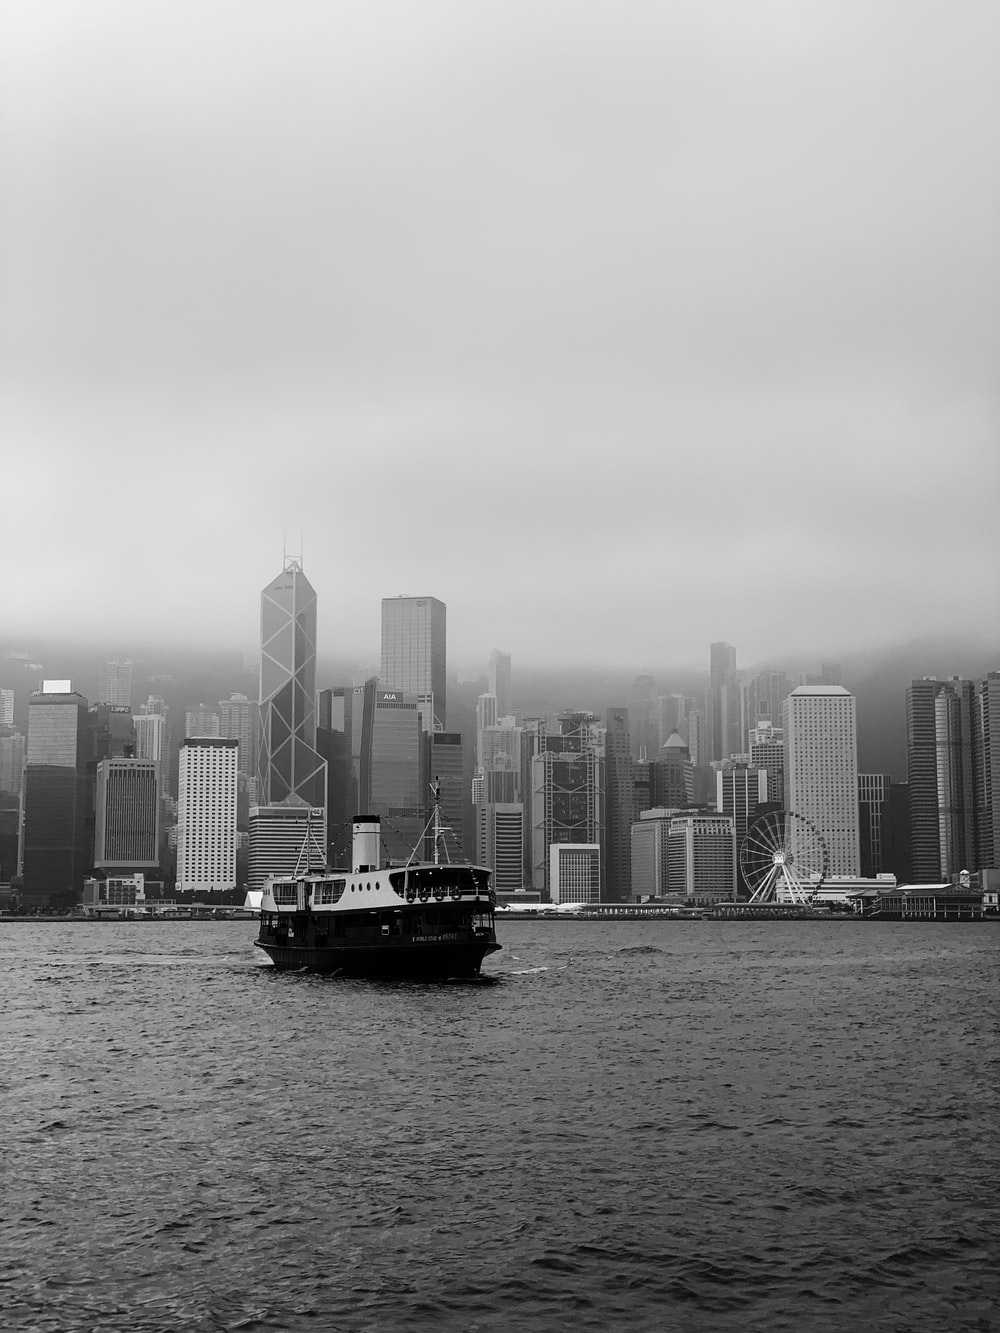 grayscale photography of passenger ship